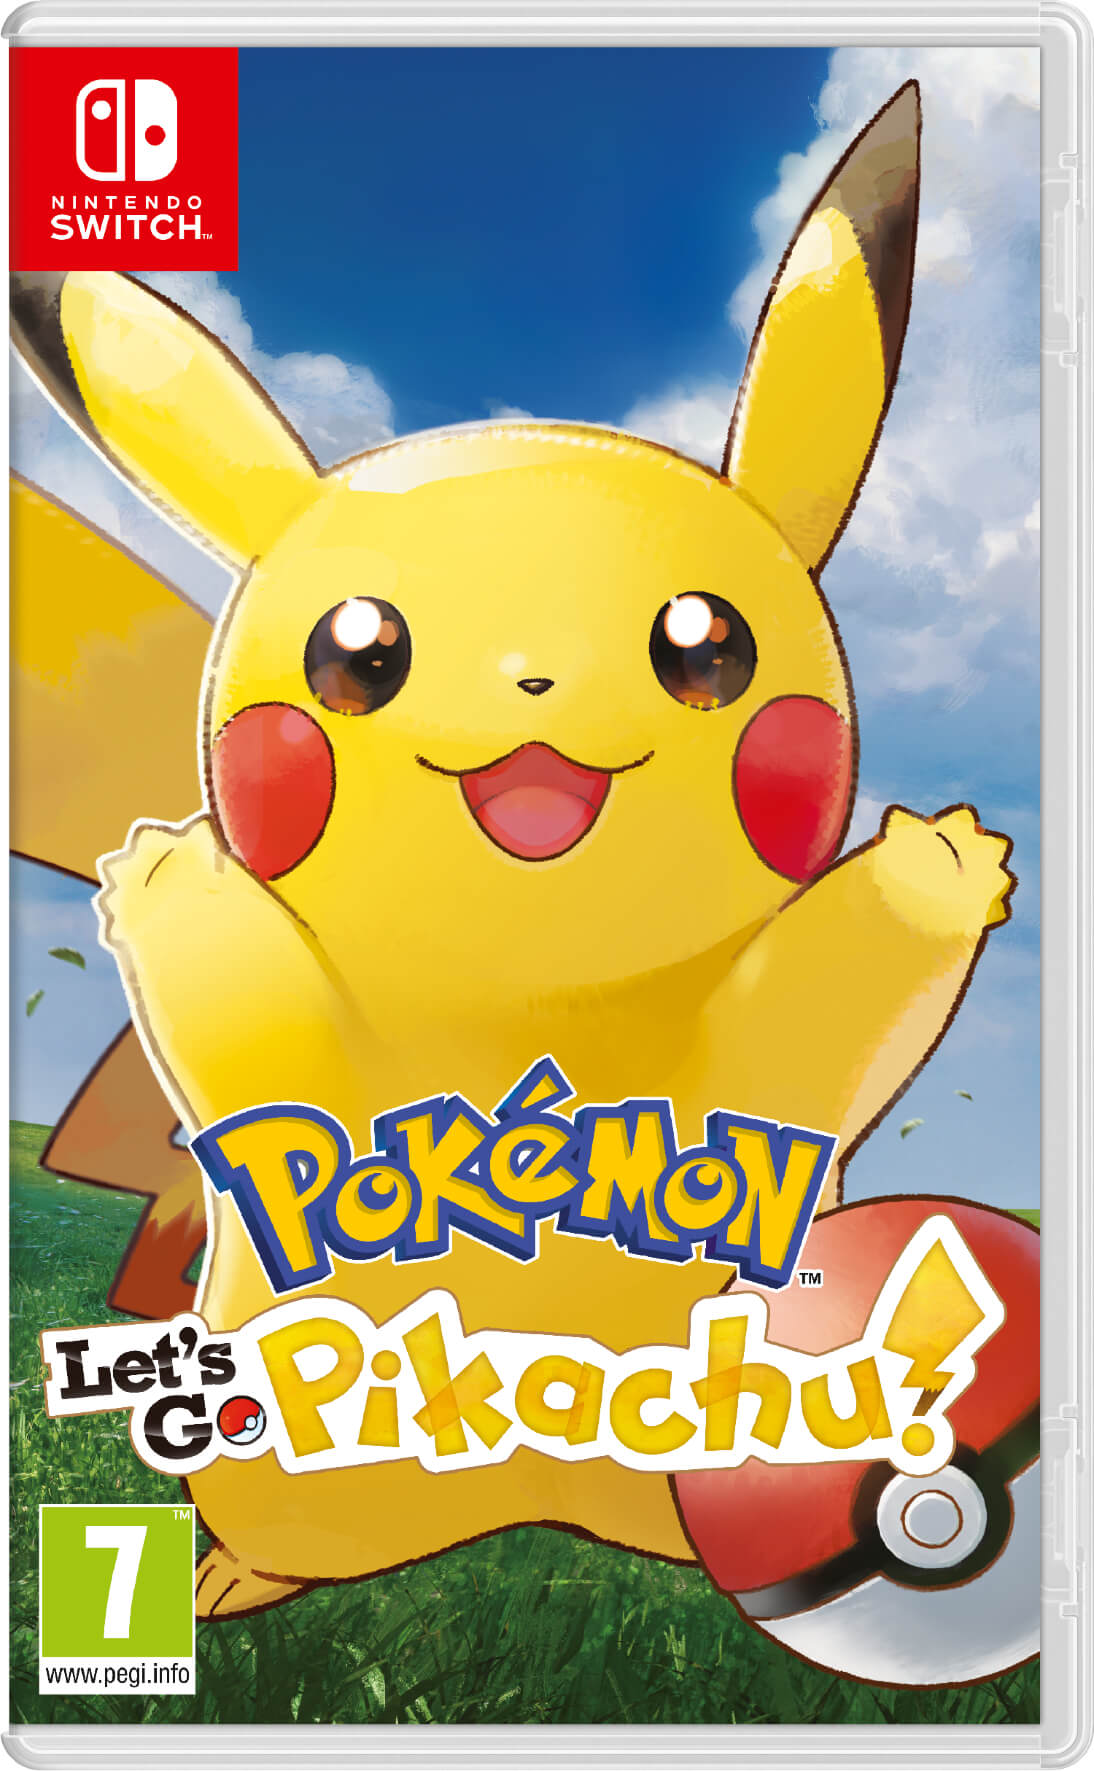 POKEMON PIKACHU - NINTENDO SWITCH